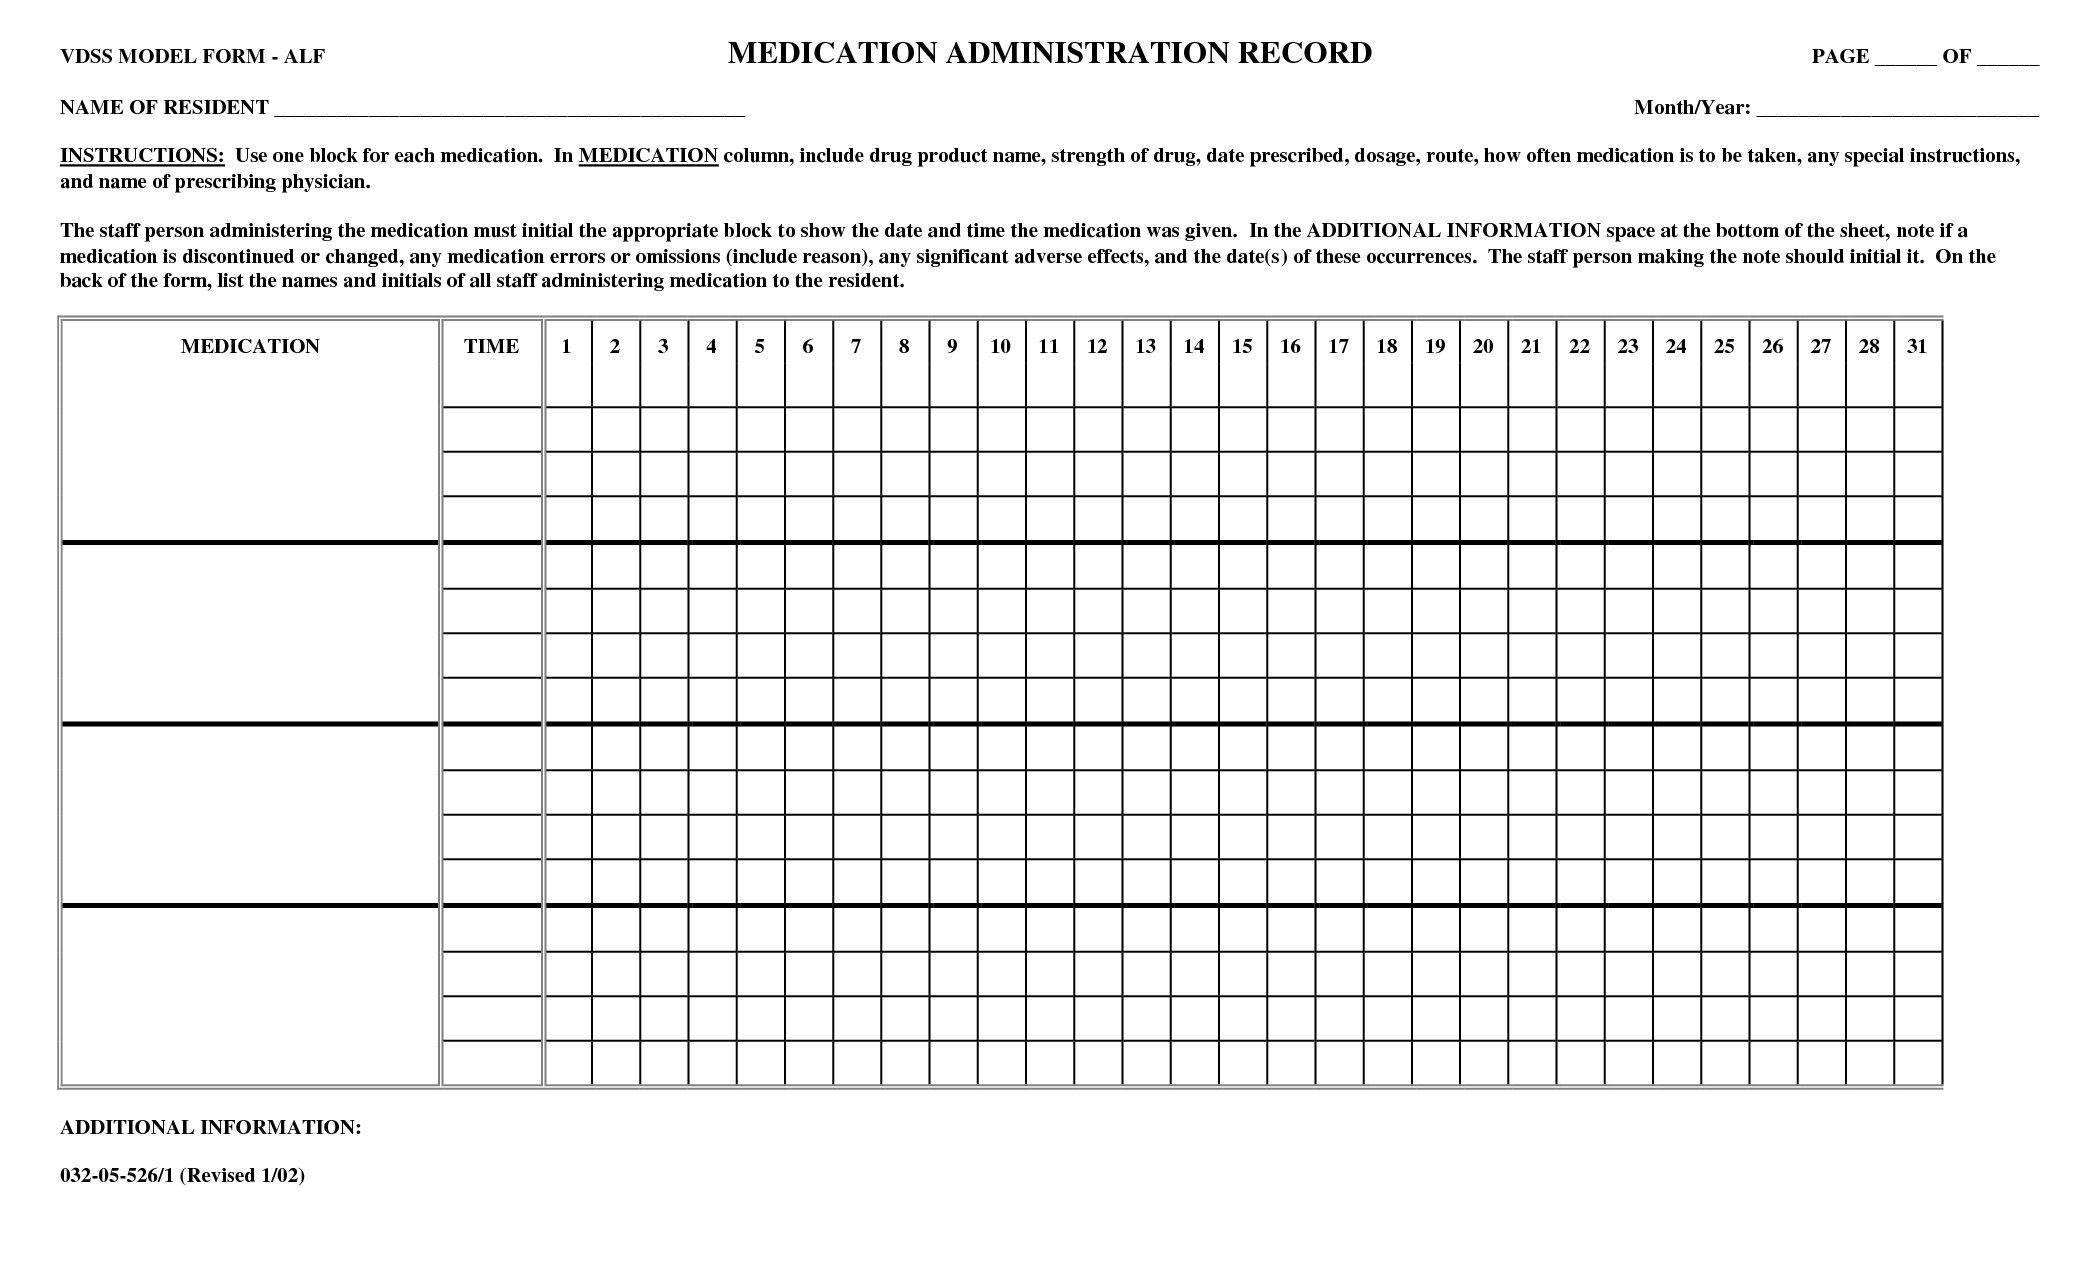 006 Incredible Medication Administration Record Form Download Design Full